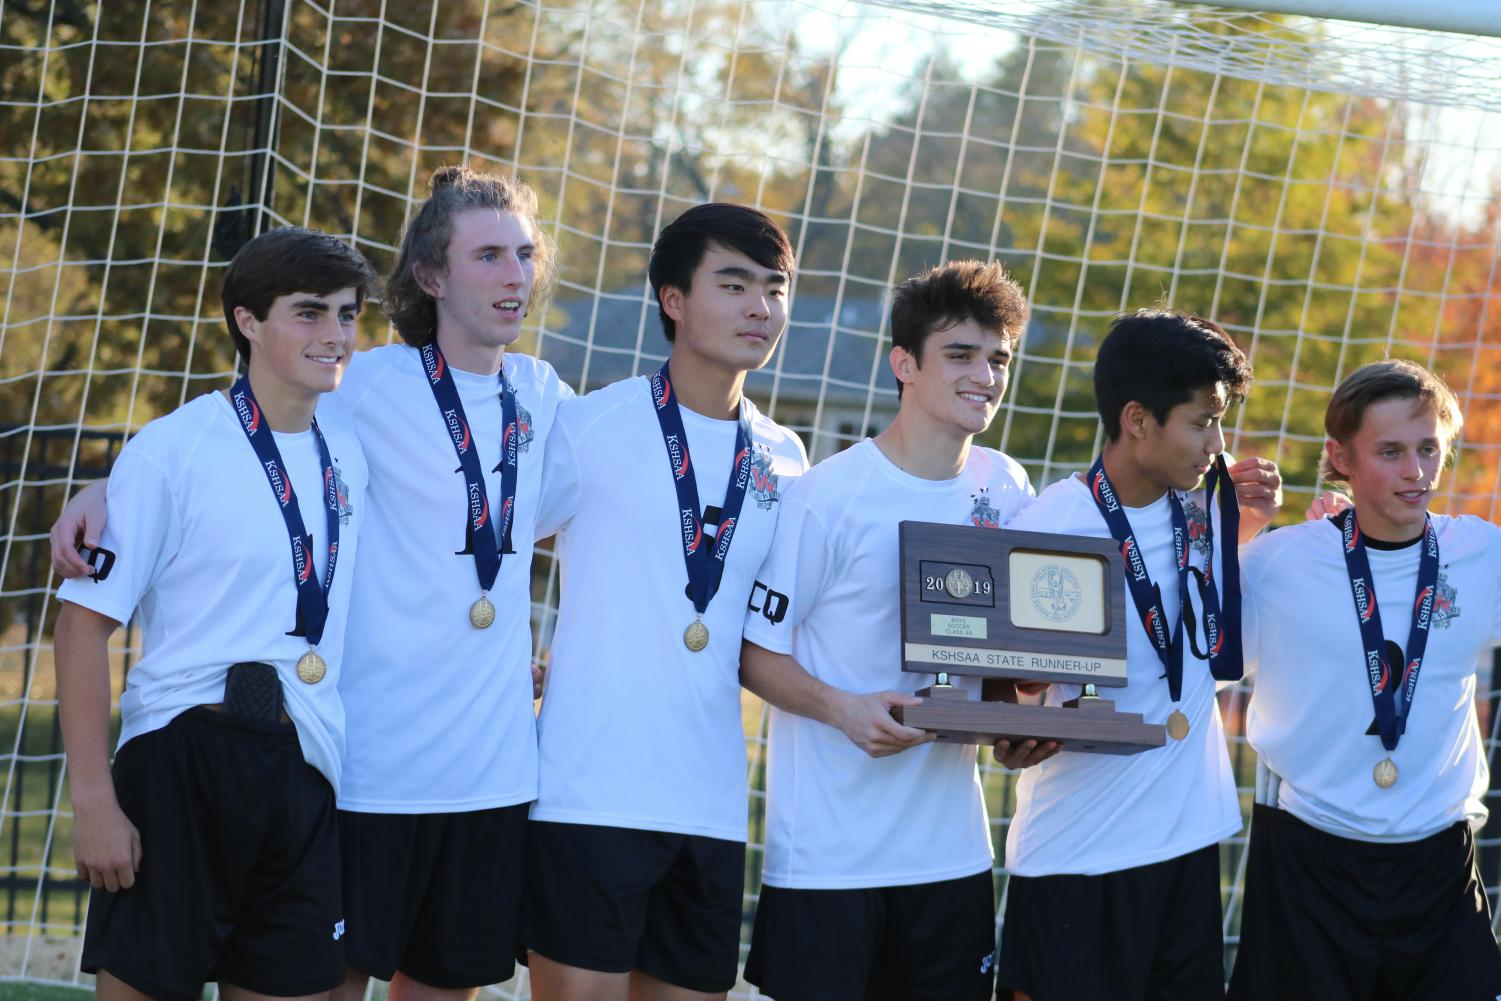 Boys soccer players show mixed emotions when accepting second place medals and trophy at State meet on Nov. 9 at Topeka's Hummer Sports Complex.